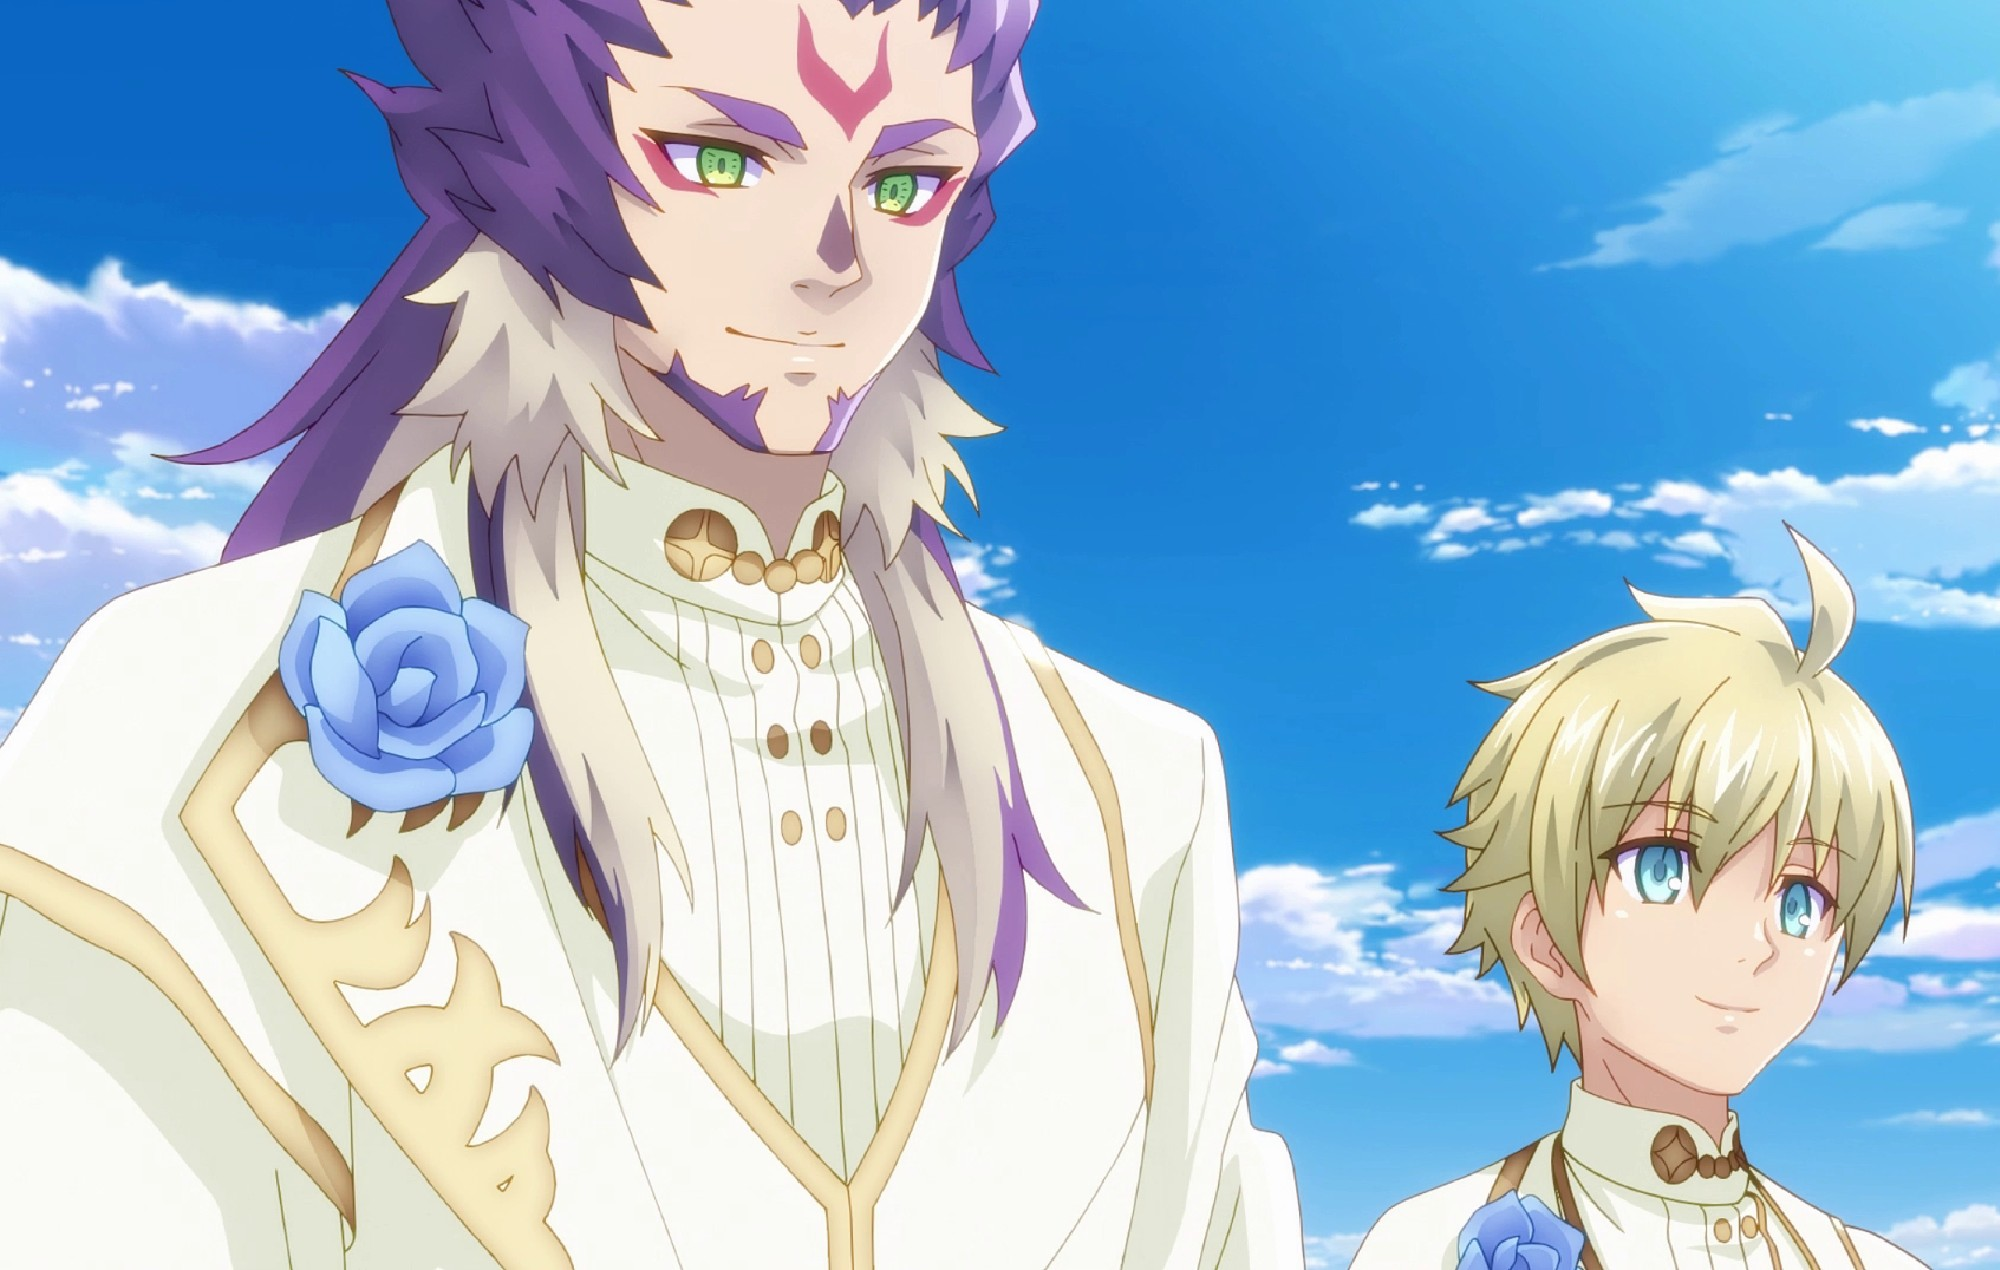 'Rune Factory 5' will have gay marriage in Western release - NME